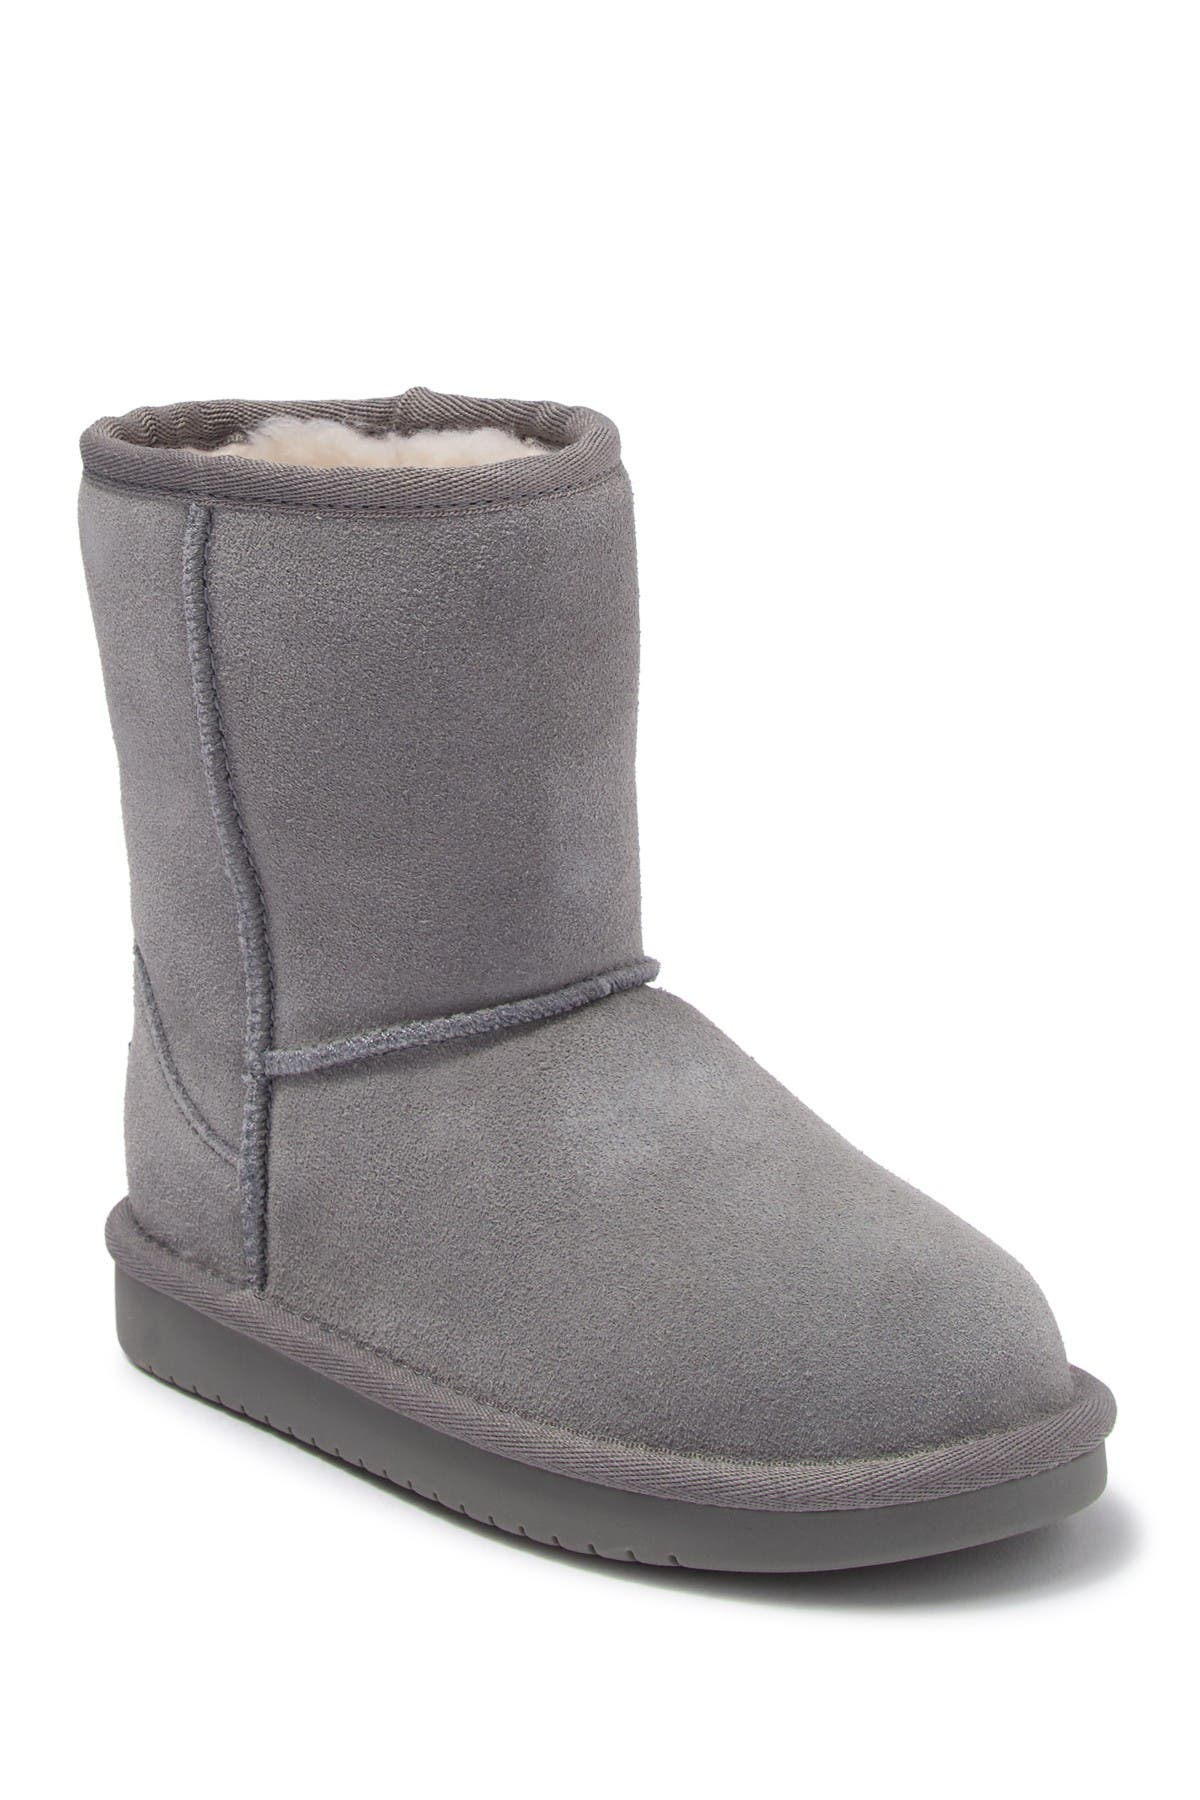 Image of KOOLABURRA BY UGG Koola Faux Fur Lined Suede Short Boot